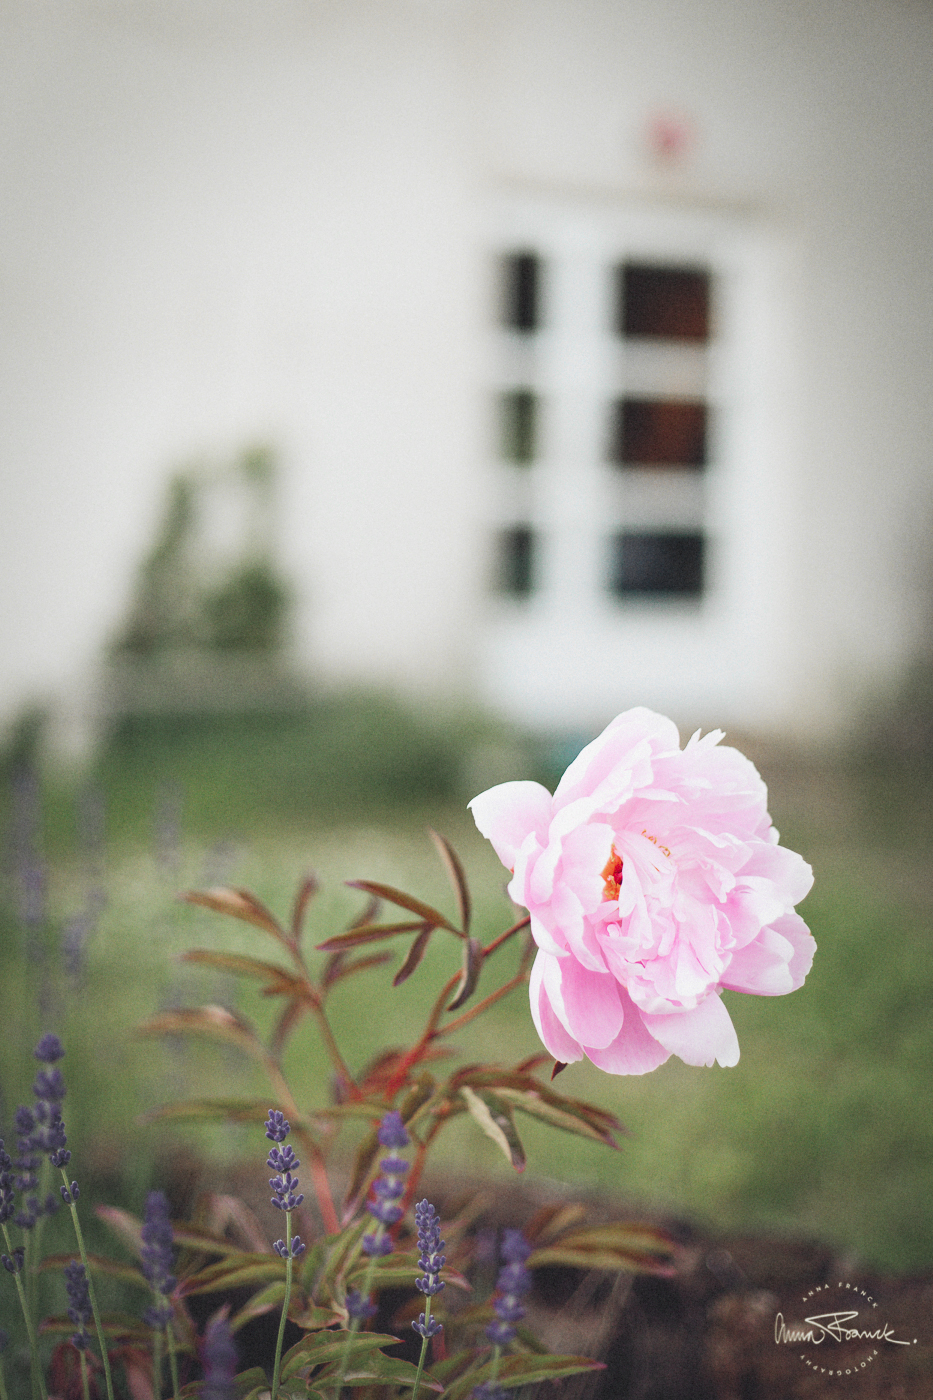 anna, franck, photography, onlocation, skåne, brösarp, home, design, decorating, interior, details, flowers, rural, house, home, nordic, artistic, bohemian